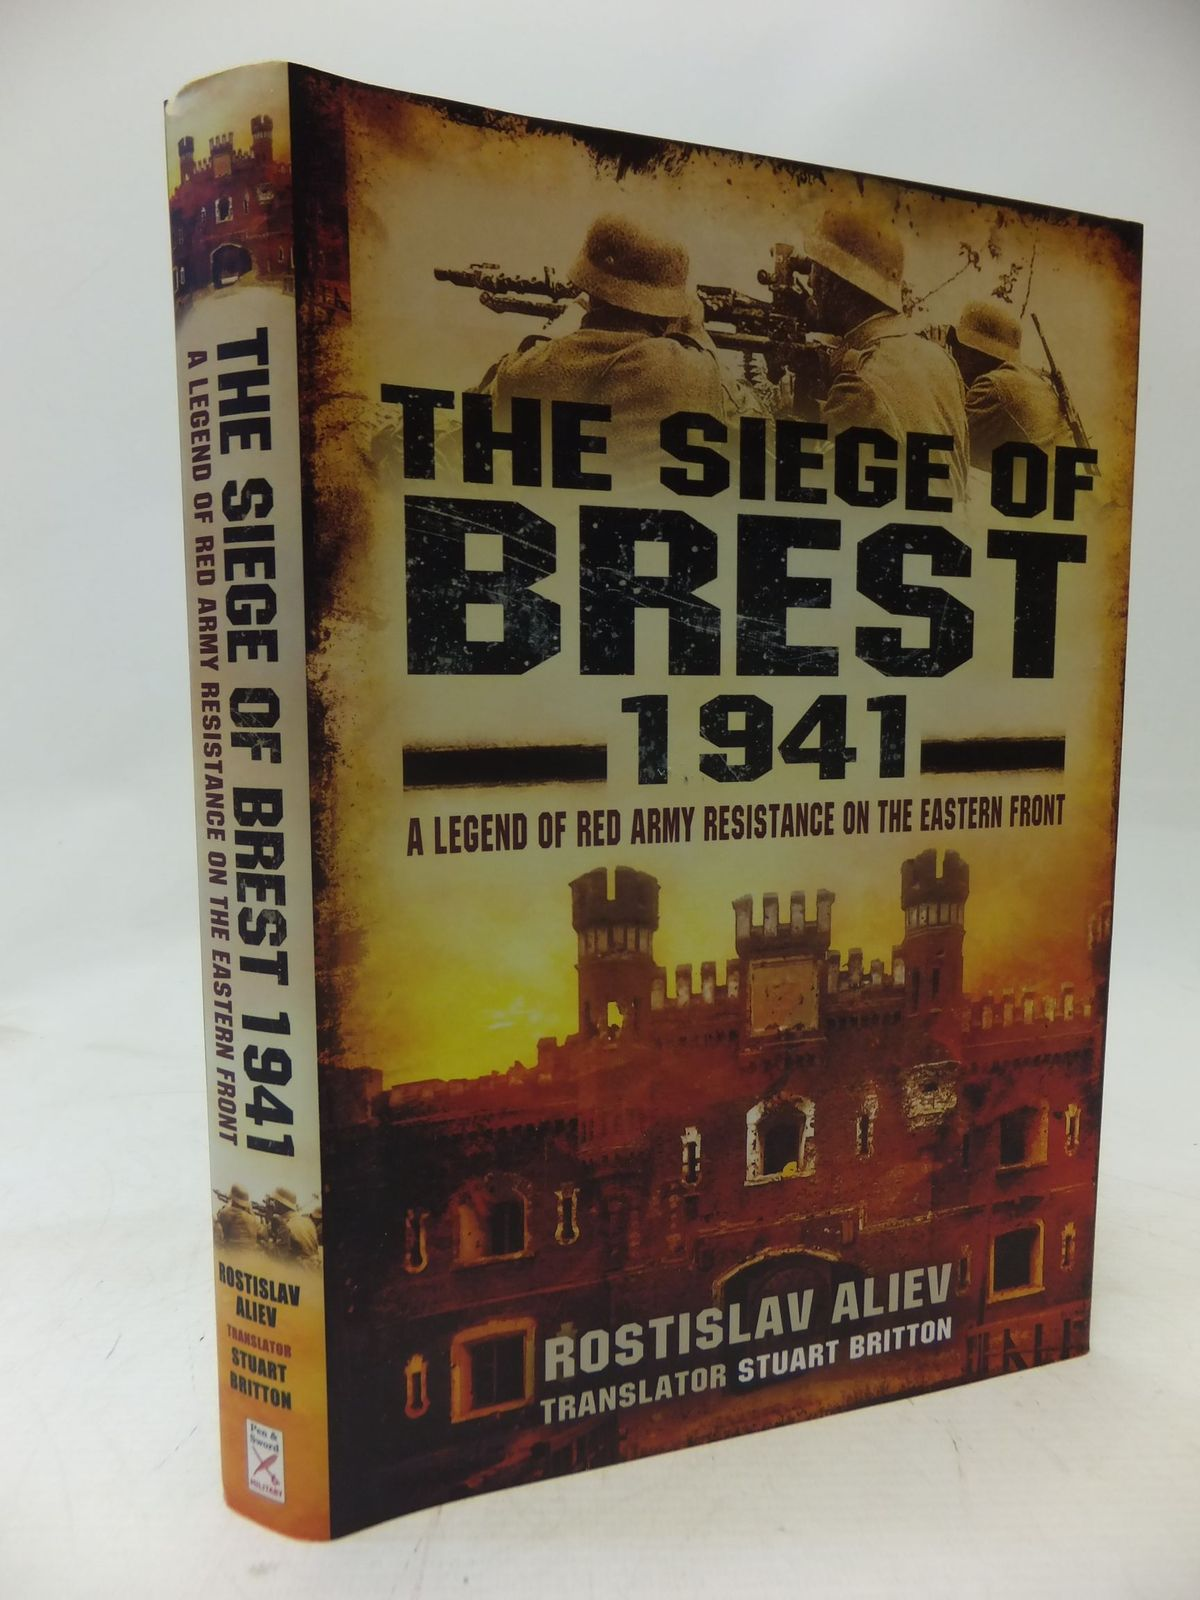 Photo of THE SIEGE OF BREST 1941 A LEGEND OF RED ARMY RESISTANCE ON THE EASTERN FRONT written by Aliev, Rostislav published by Pen & Sword Military (STOCK CODE: 1711922)  for sale by Stella & Rose's Books